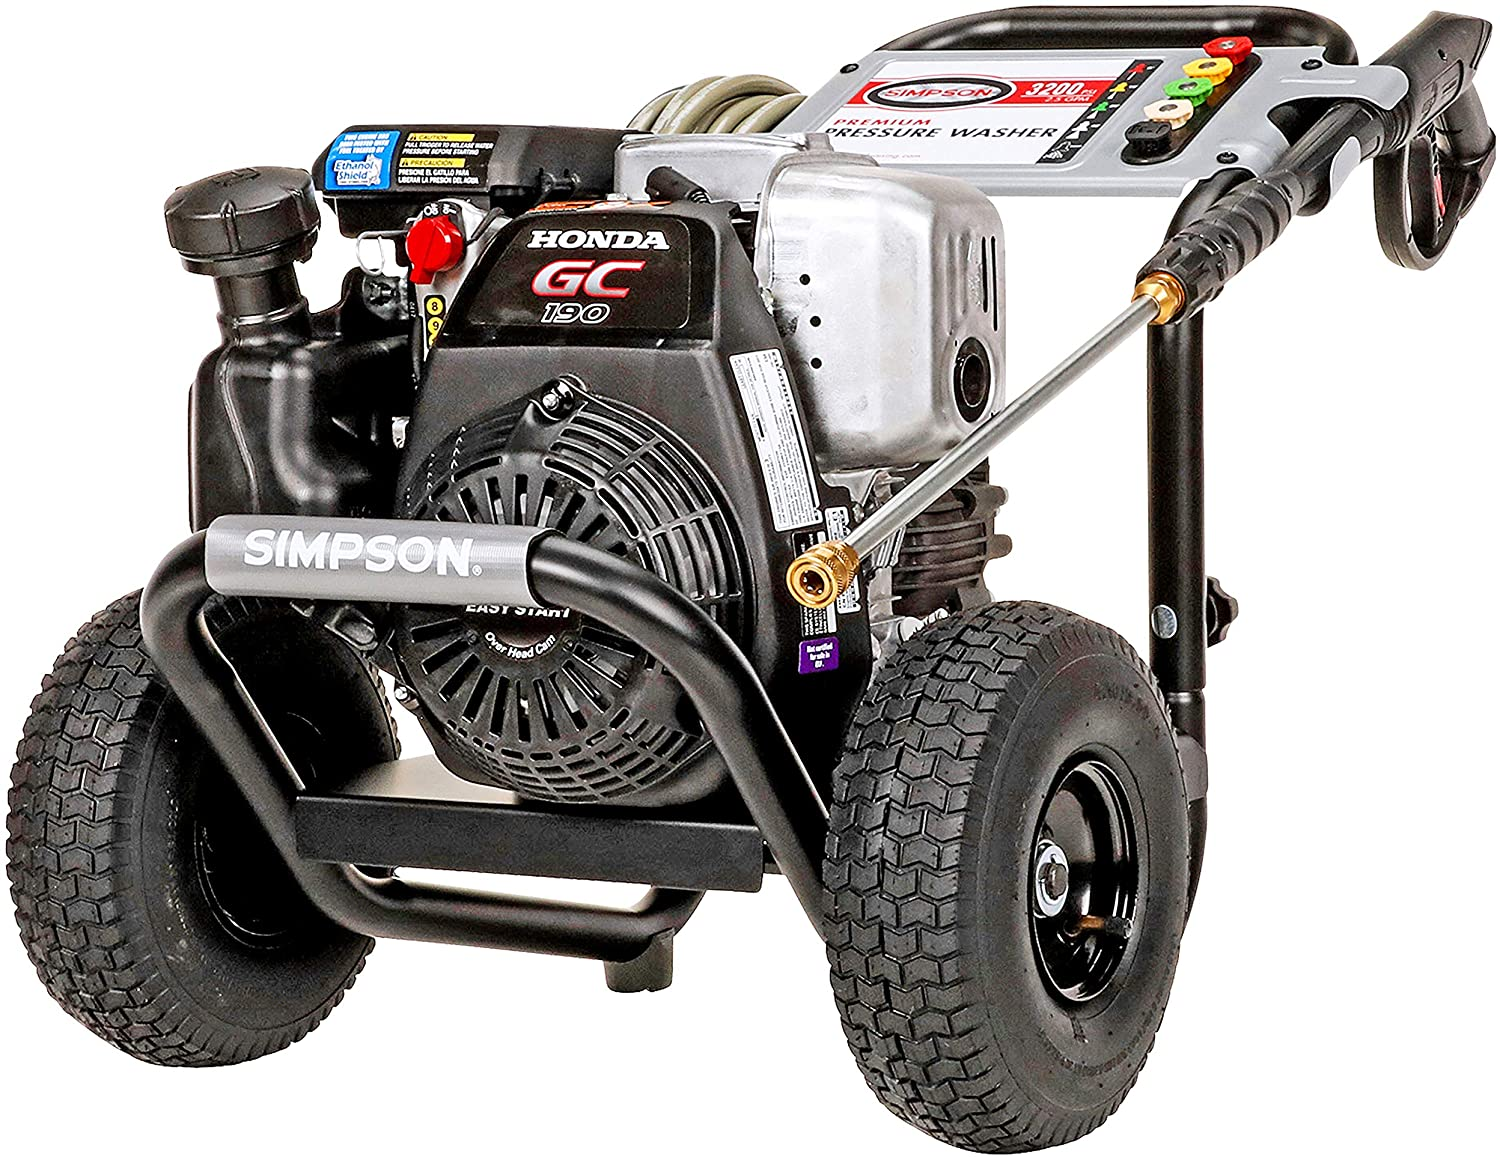 Simpson Cleaning MSH3125 MegaShot Gas Pressure Washer Powered by Honda